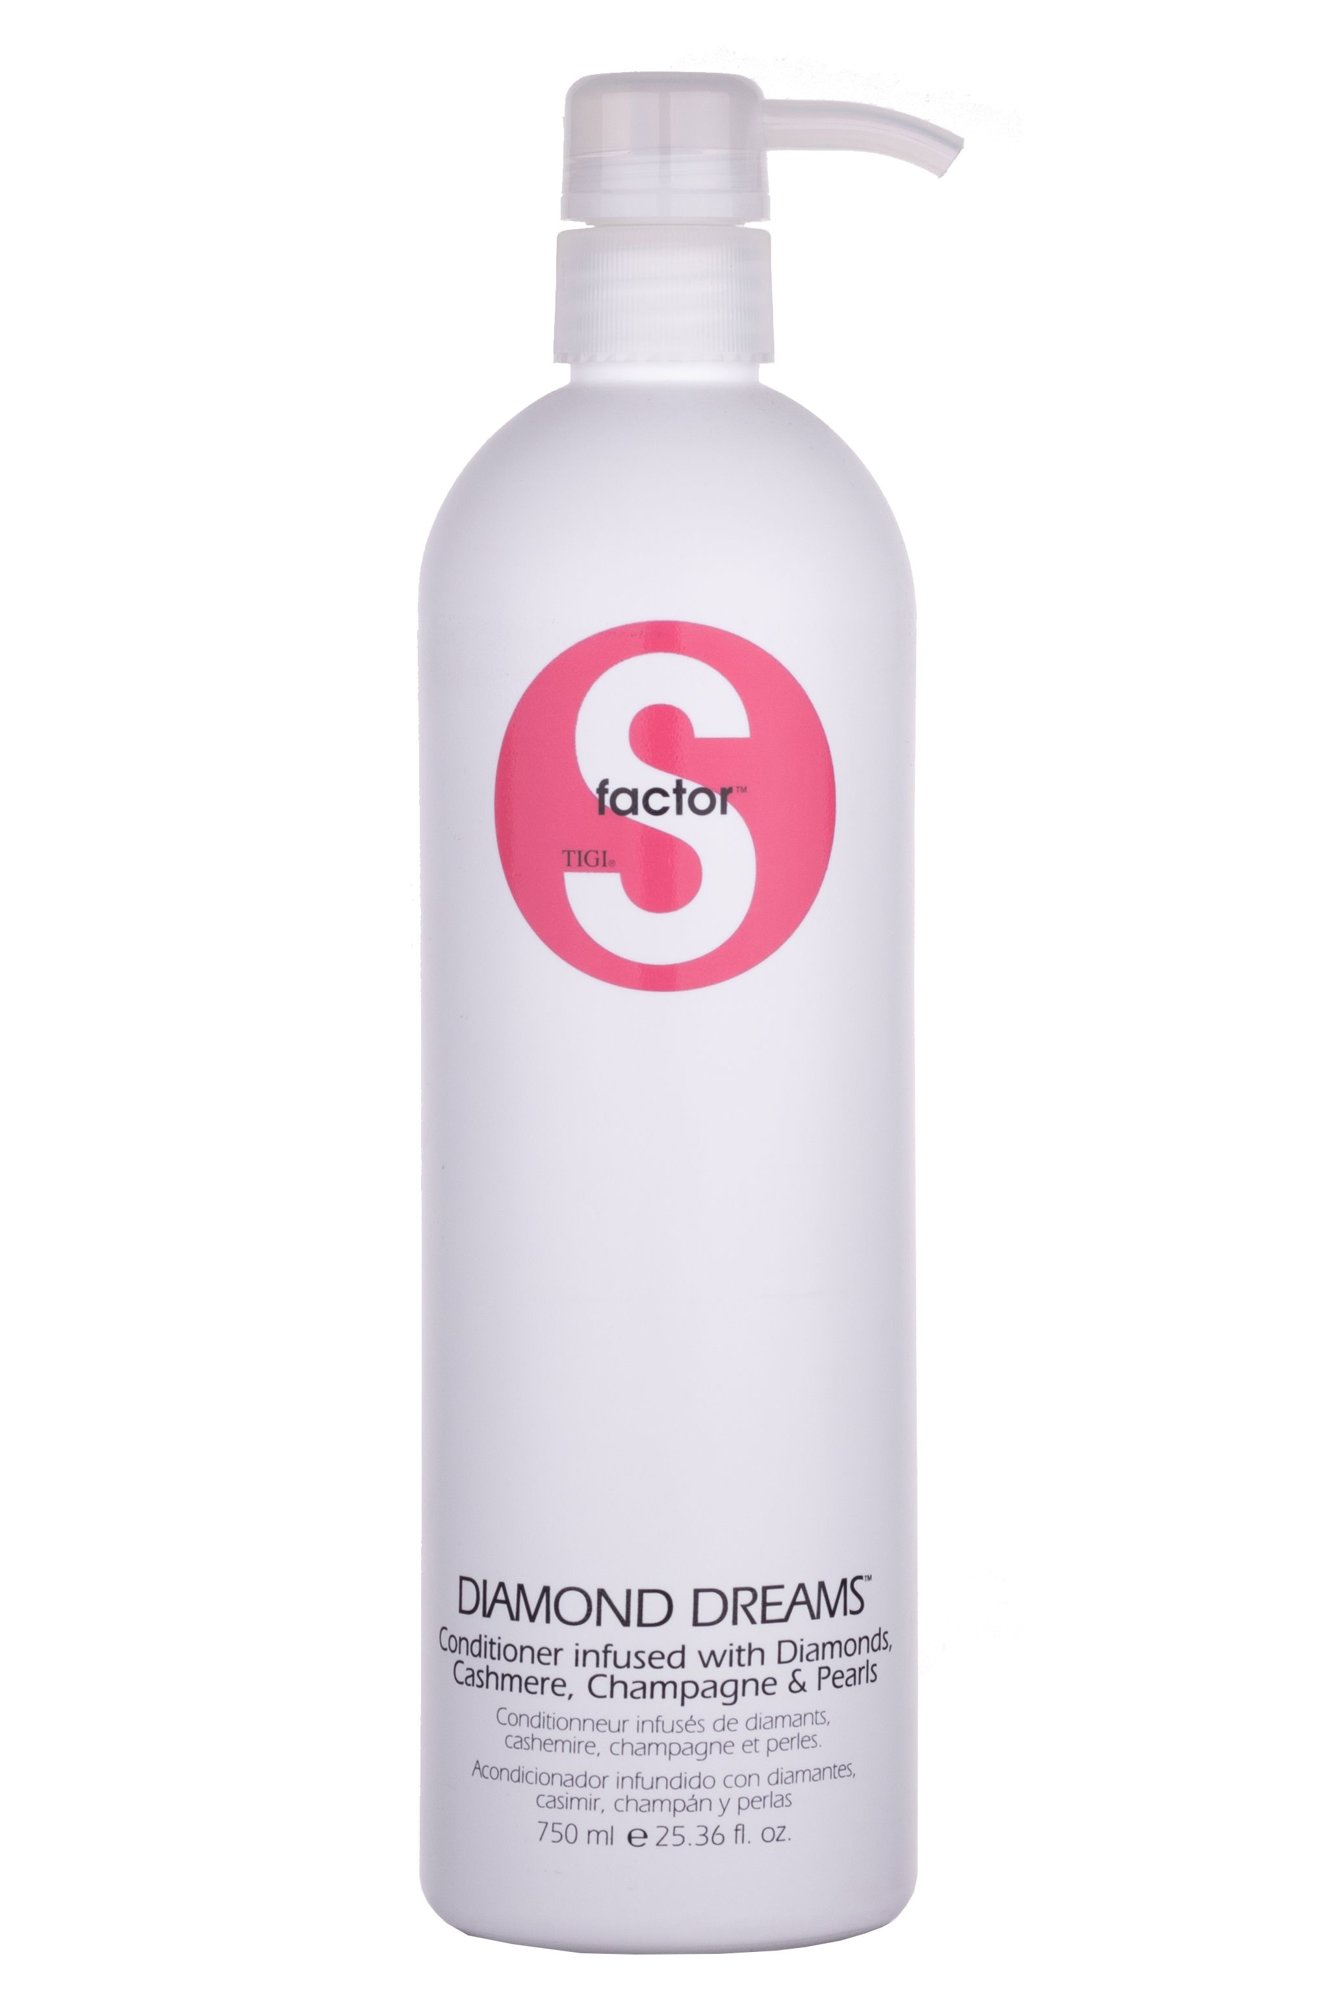 Tigi S Factor Diamond Dreams Cosmetic 750ml